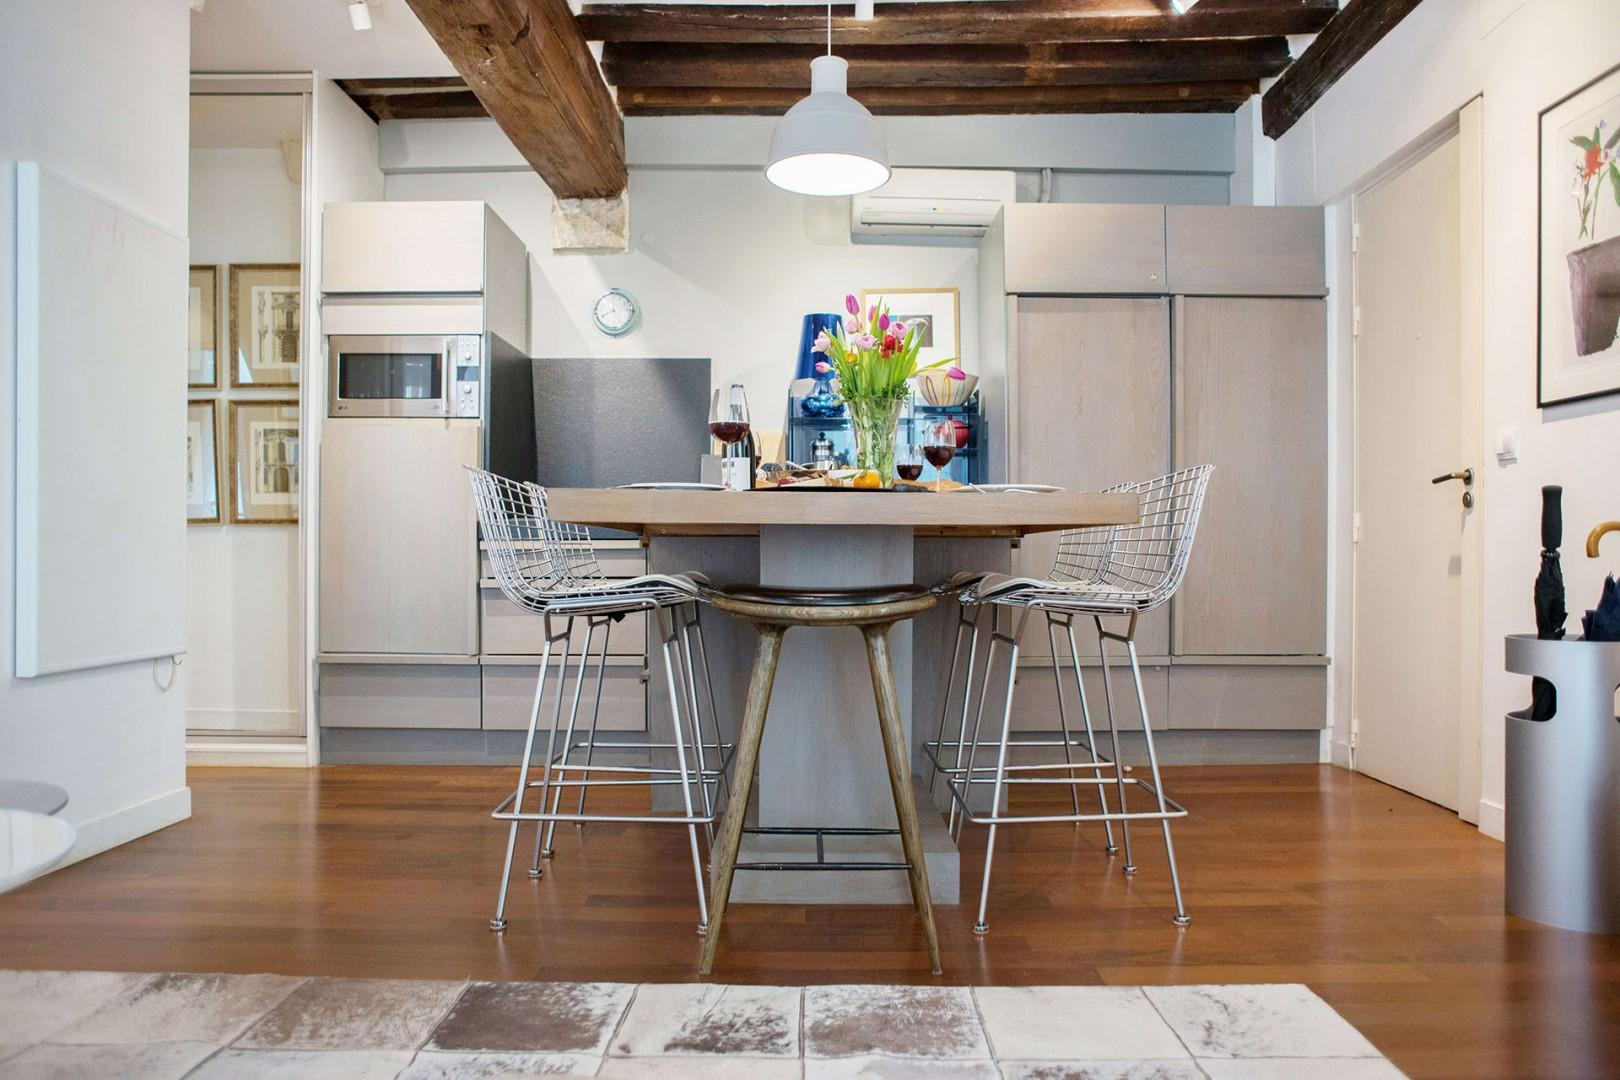 Enjoy casual meals in the built-in dining area.